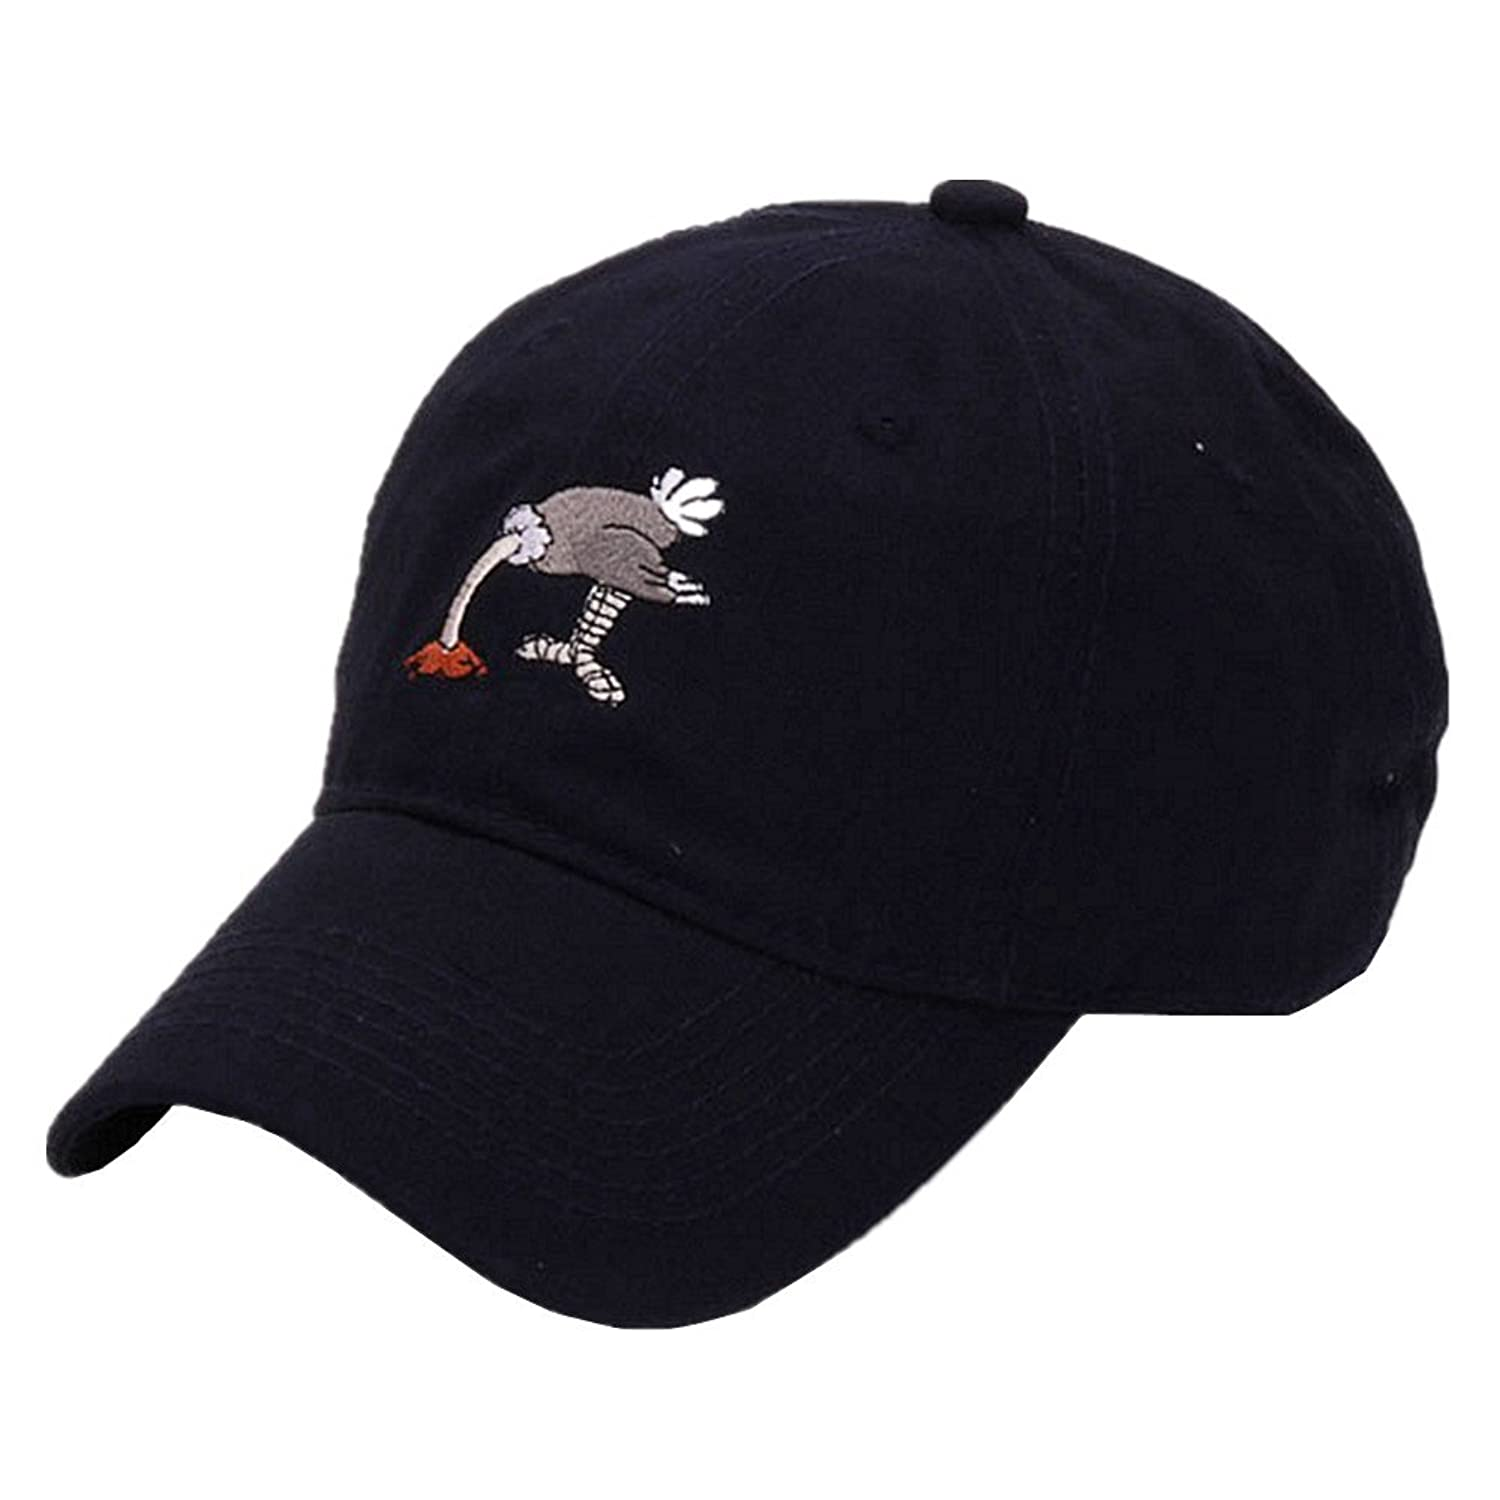 Selcet Black Stupid Ostrich Embroidery Baseball Cap Cotton Dad Hat Casual Tourism